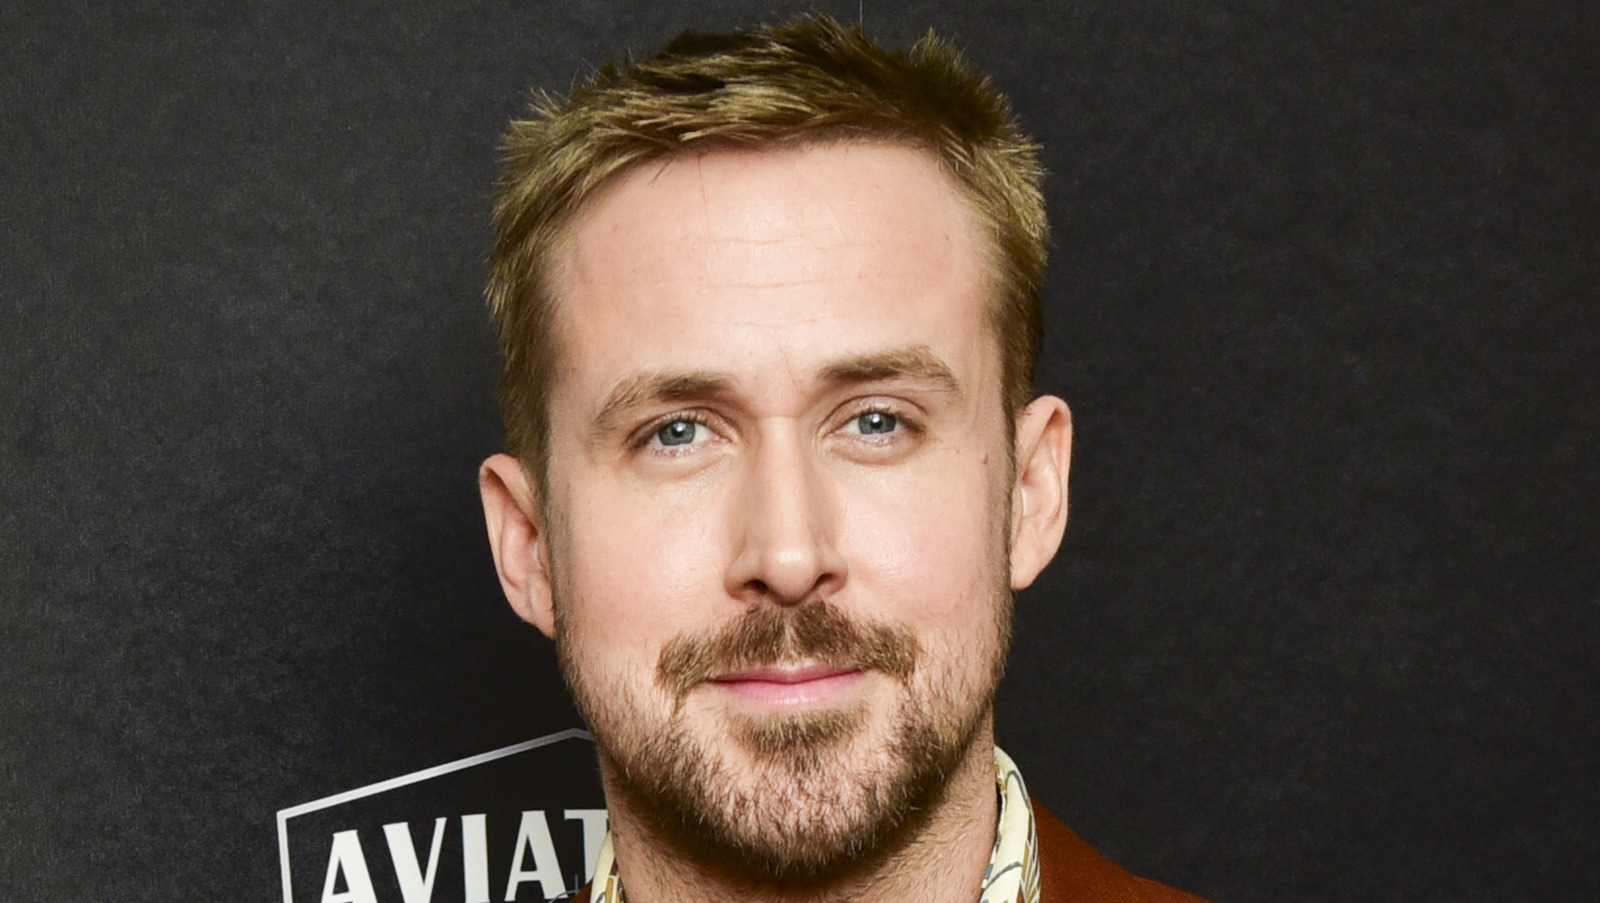 The Unsaid Truth About Ryan Gosling And Justin Timberlake's Friendship